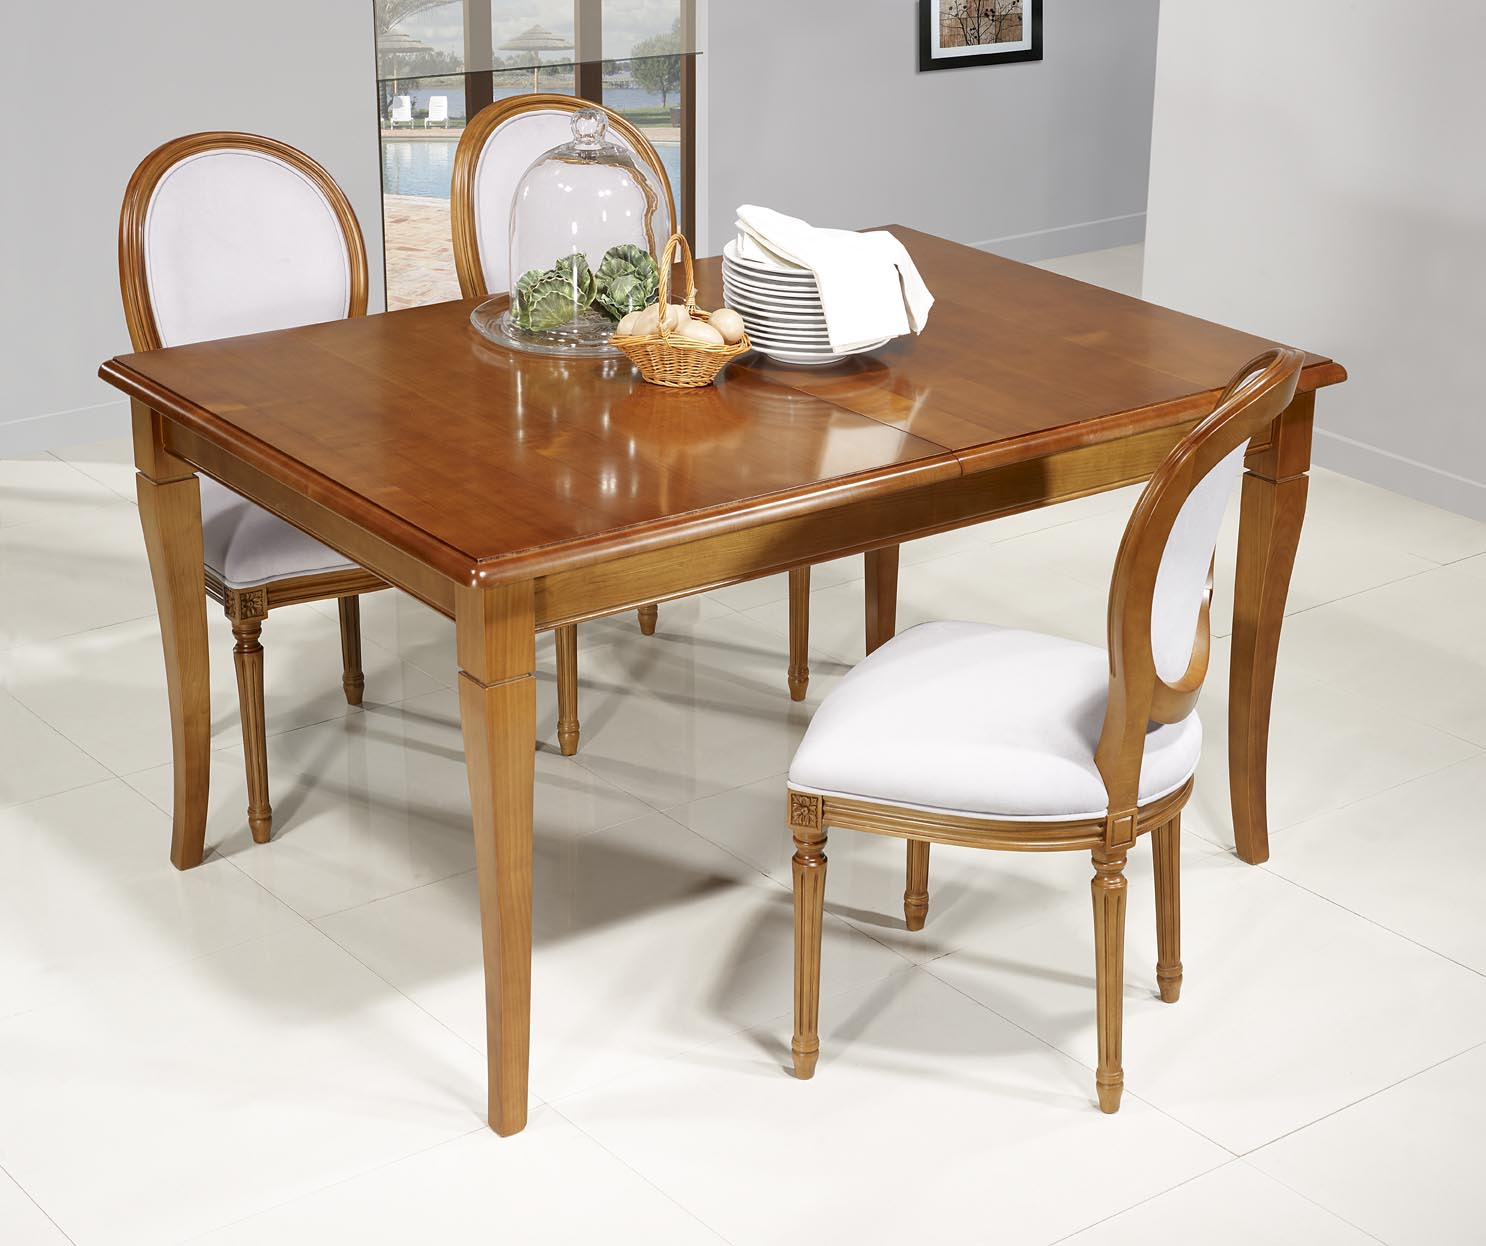 Table de repas emeline en merisier massif de style louis for Table rallonge bois massif